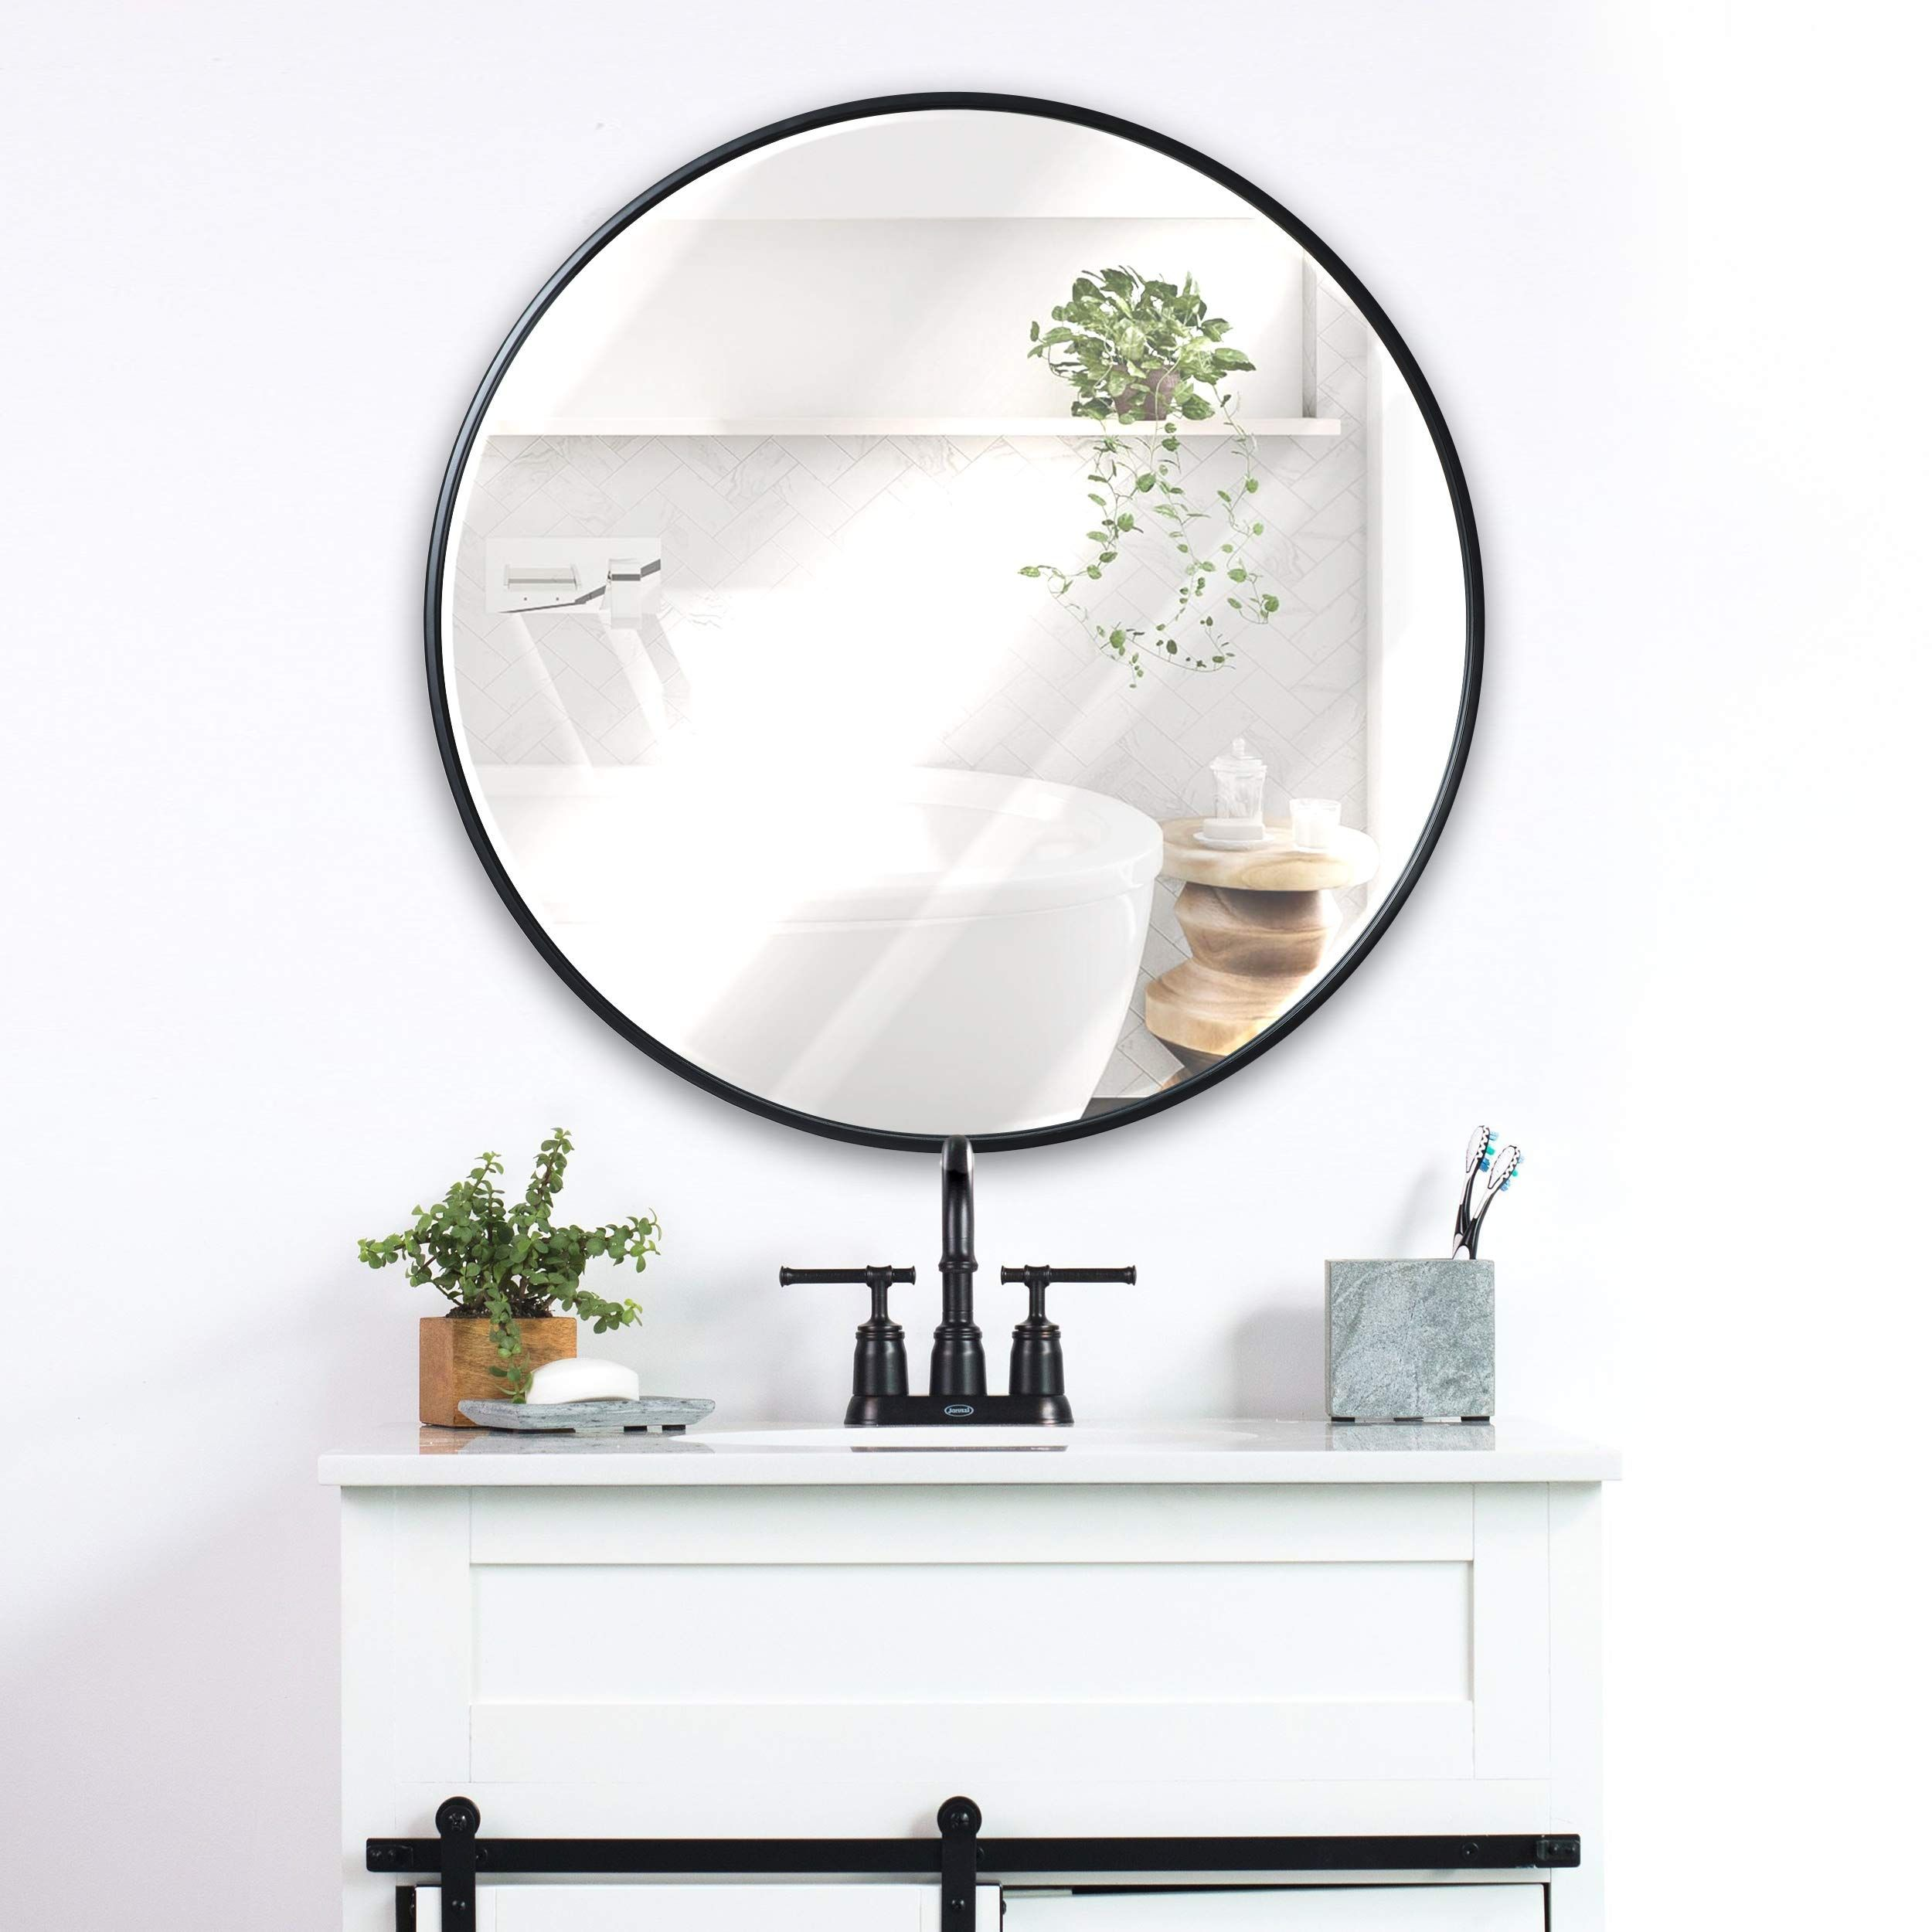 Black Round Wall Mirror 24 Inch Large Round Mirror Rustic Accent Mirror For Bathroom Entry Dining Room In 2020 Round Mirror Bathroom Round Wall Mirror Bathroom Mirror